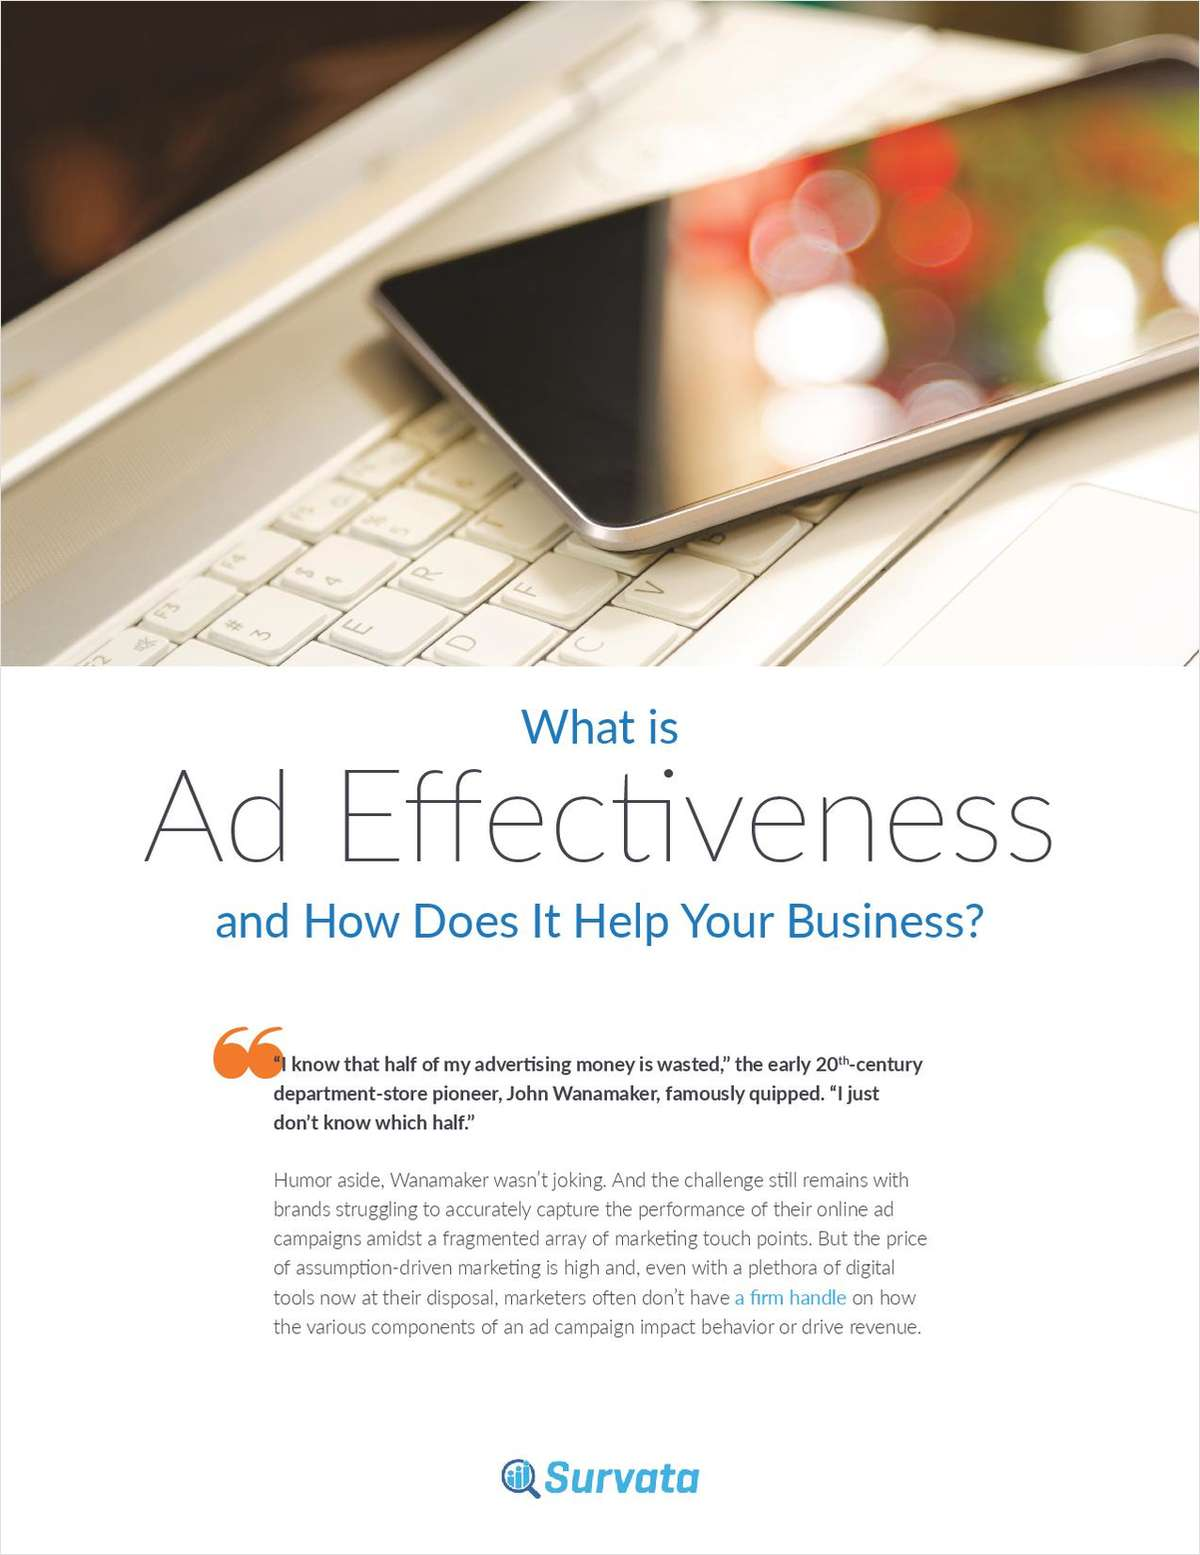 What is Ad Effectiveness and How Does It Help Your Business?